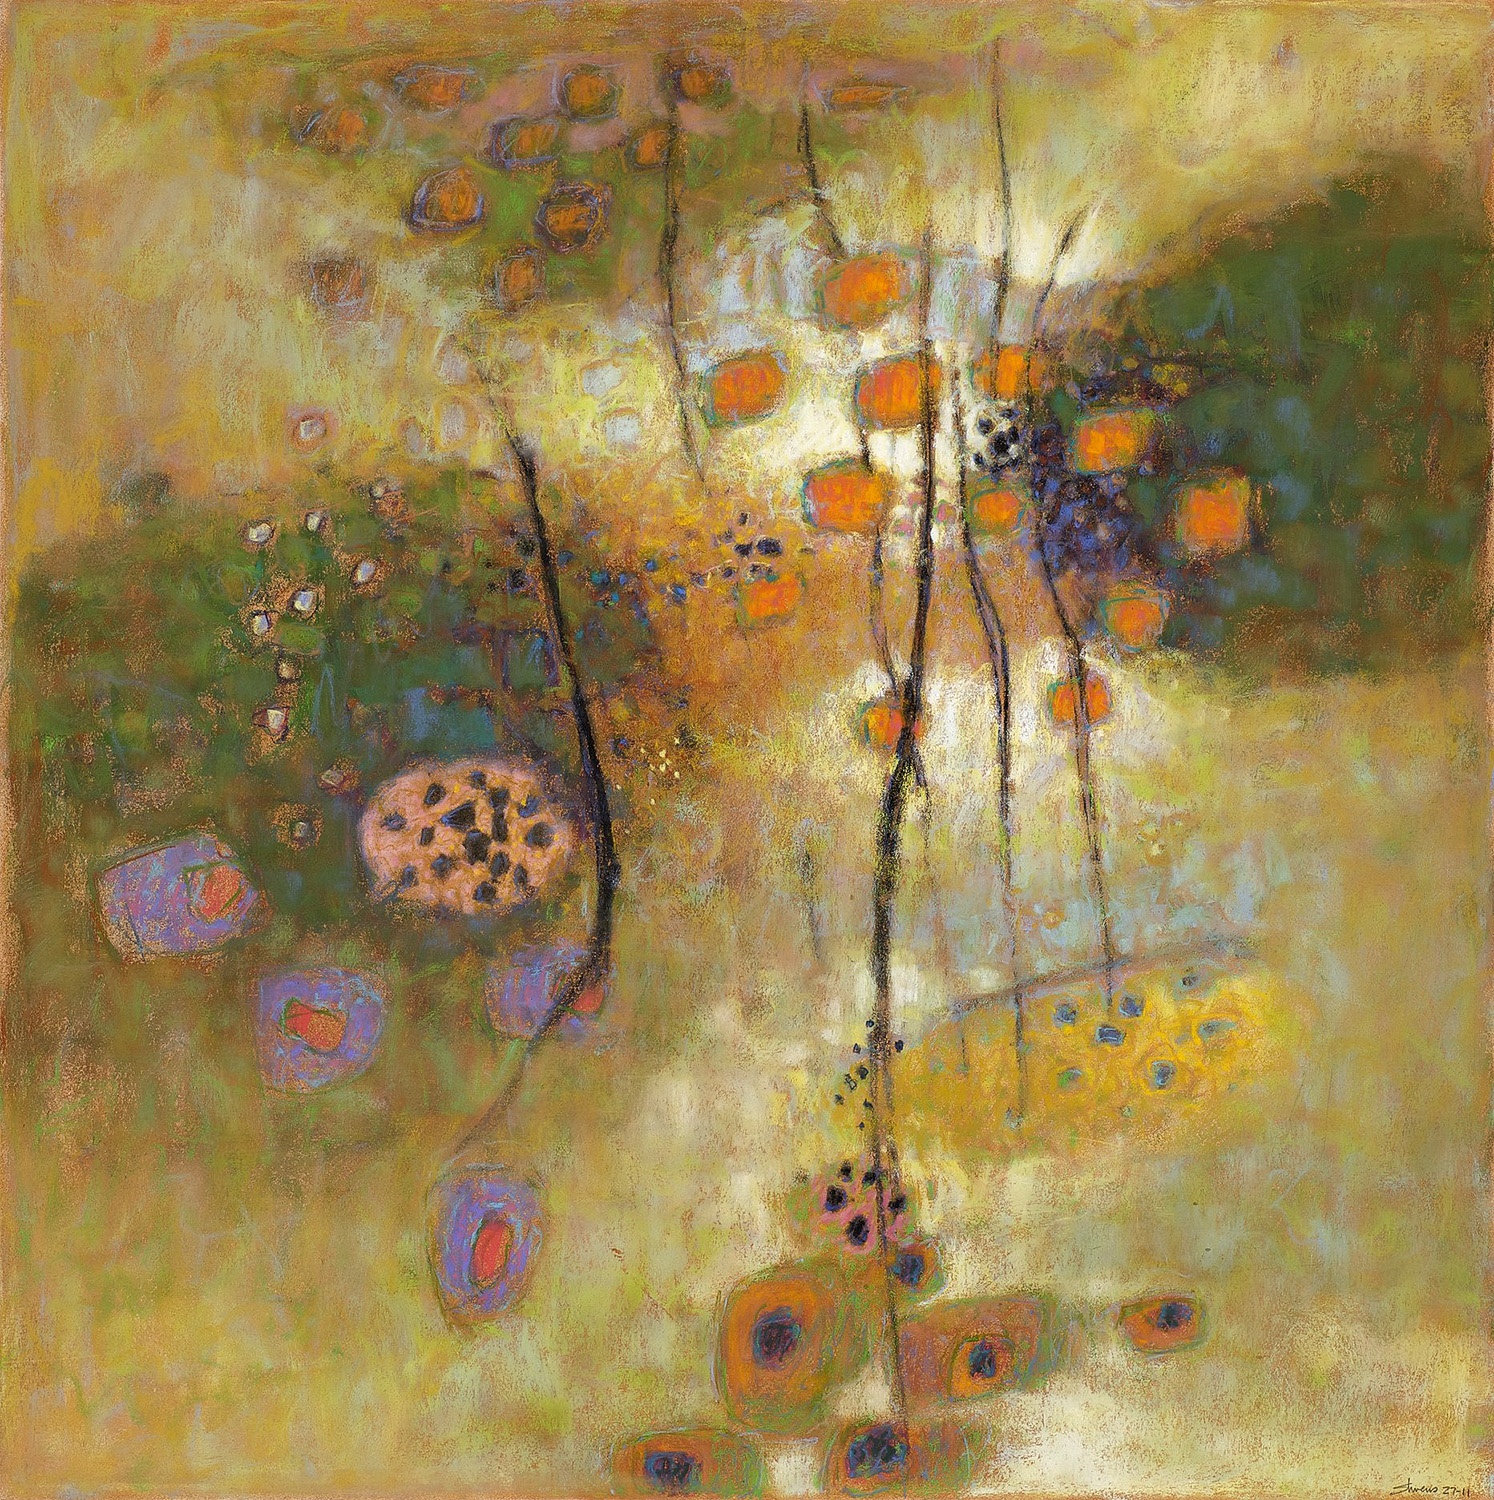 Morning Jewels II   | pastel on paper | 31 x 32"